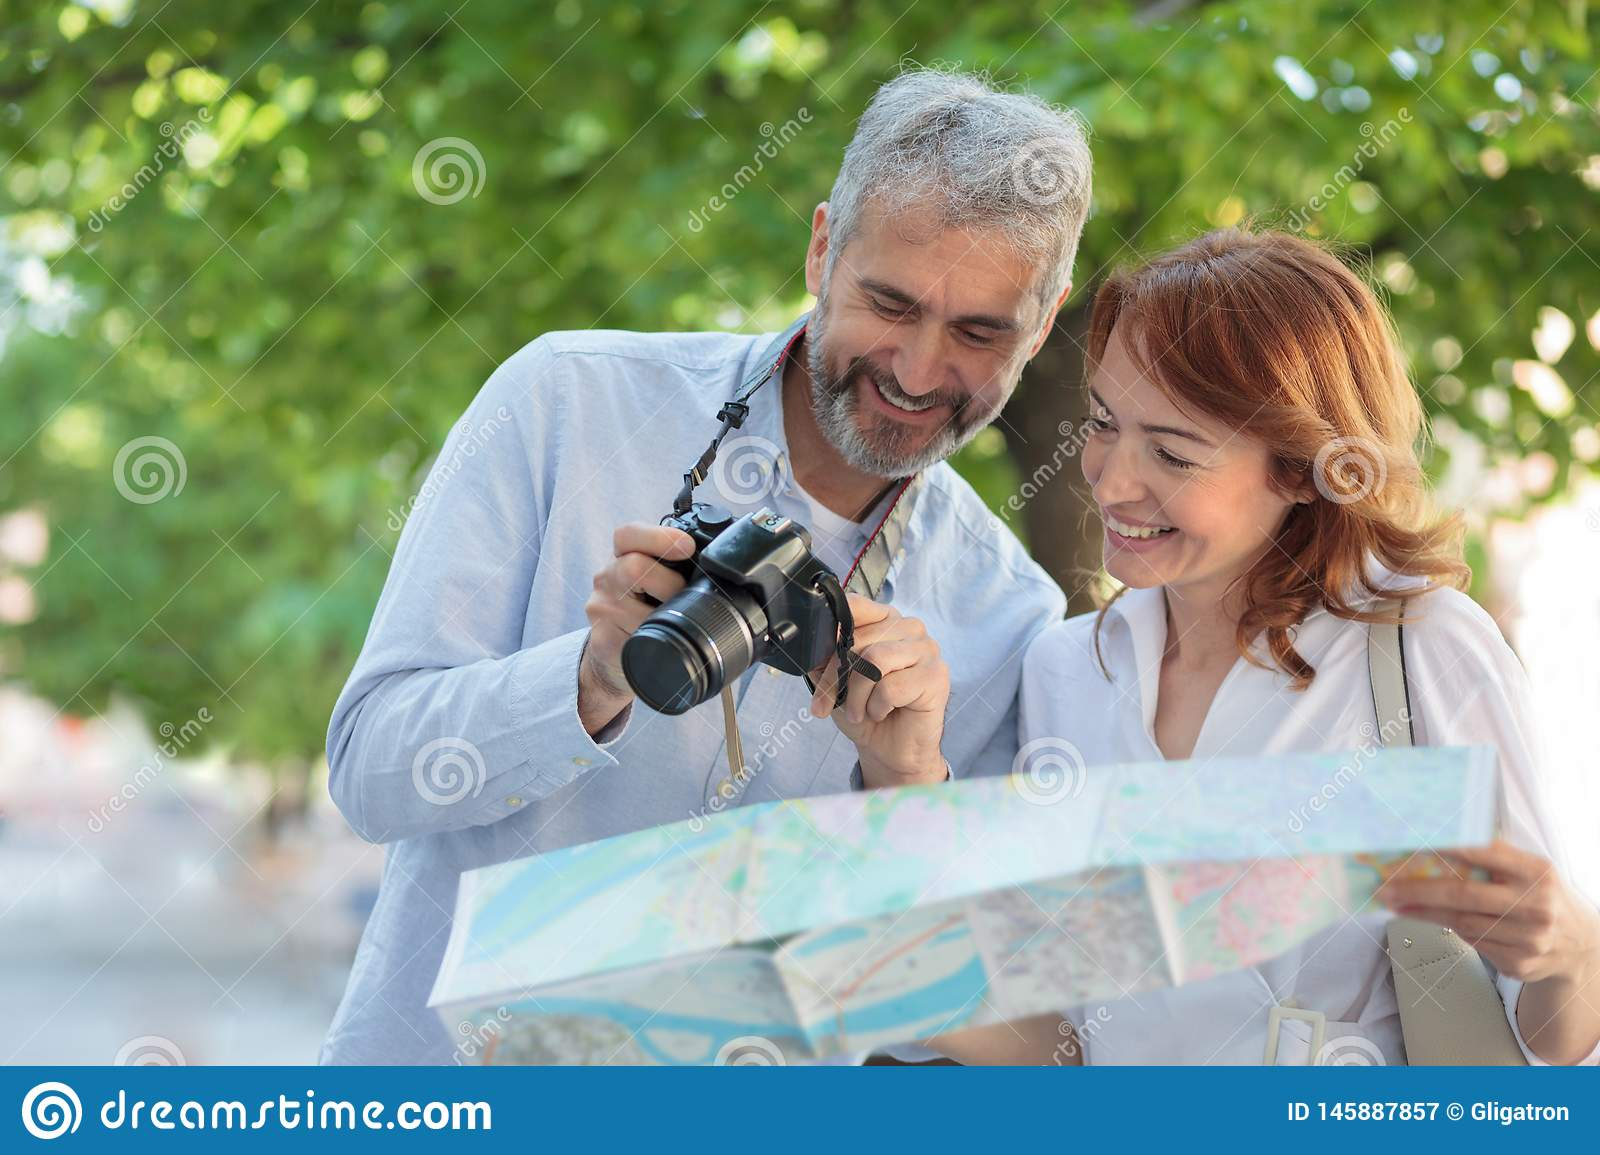 Two mid adult tourists walking through the park, woman is holding a map and man is showing pictures on a digital camera